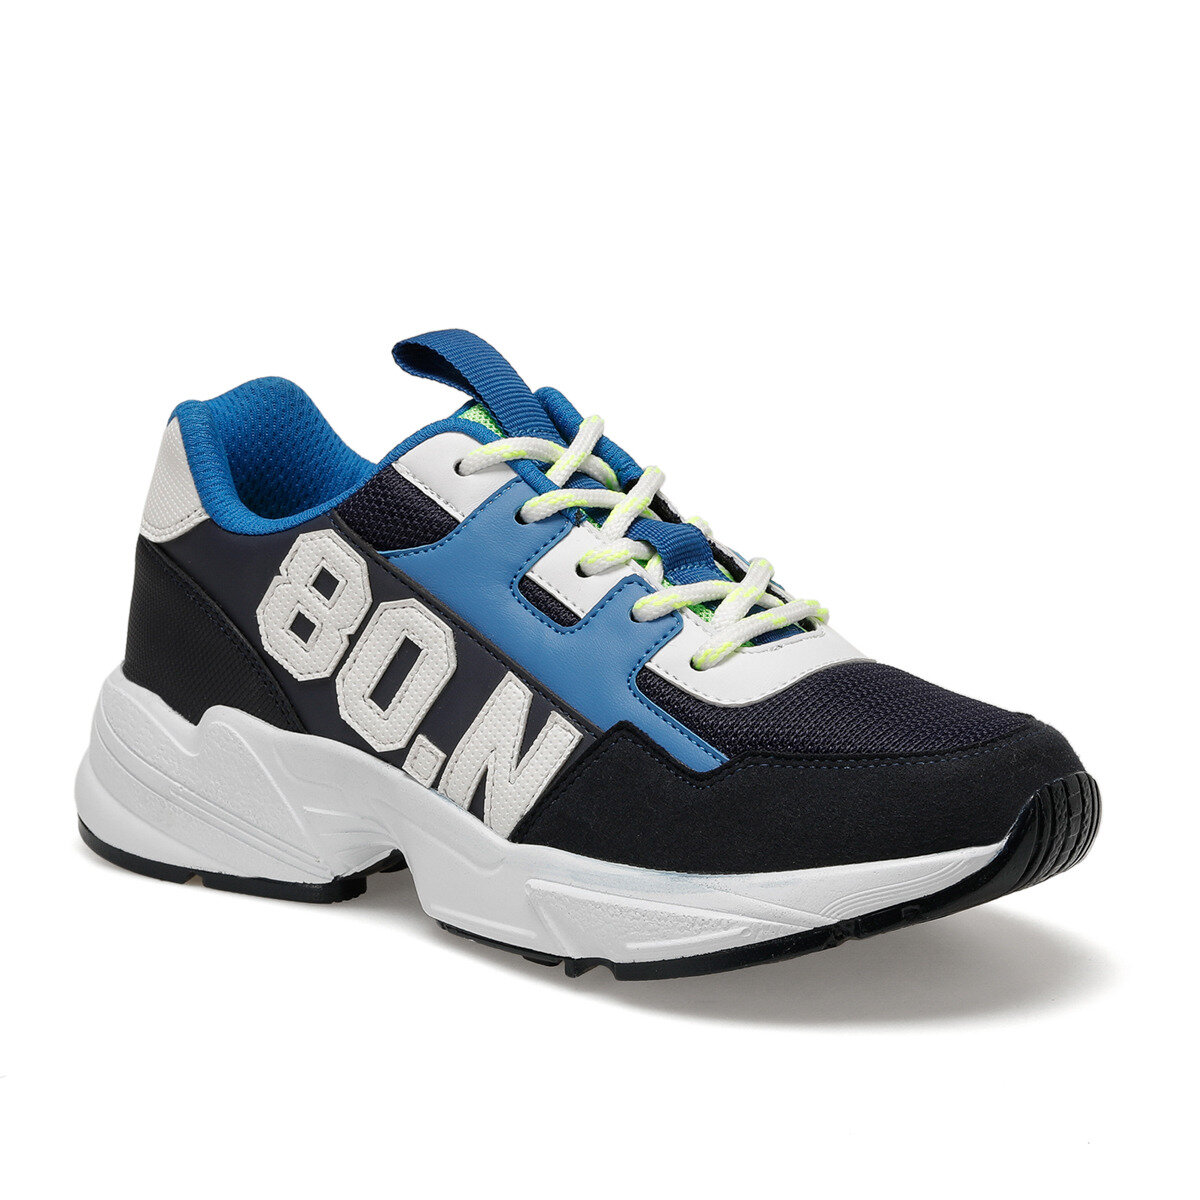 FLO OTTO Navy Blue Male Child Sports Shoes Panama Club